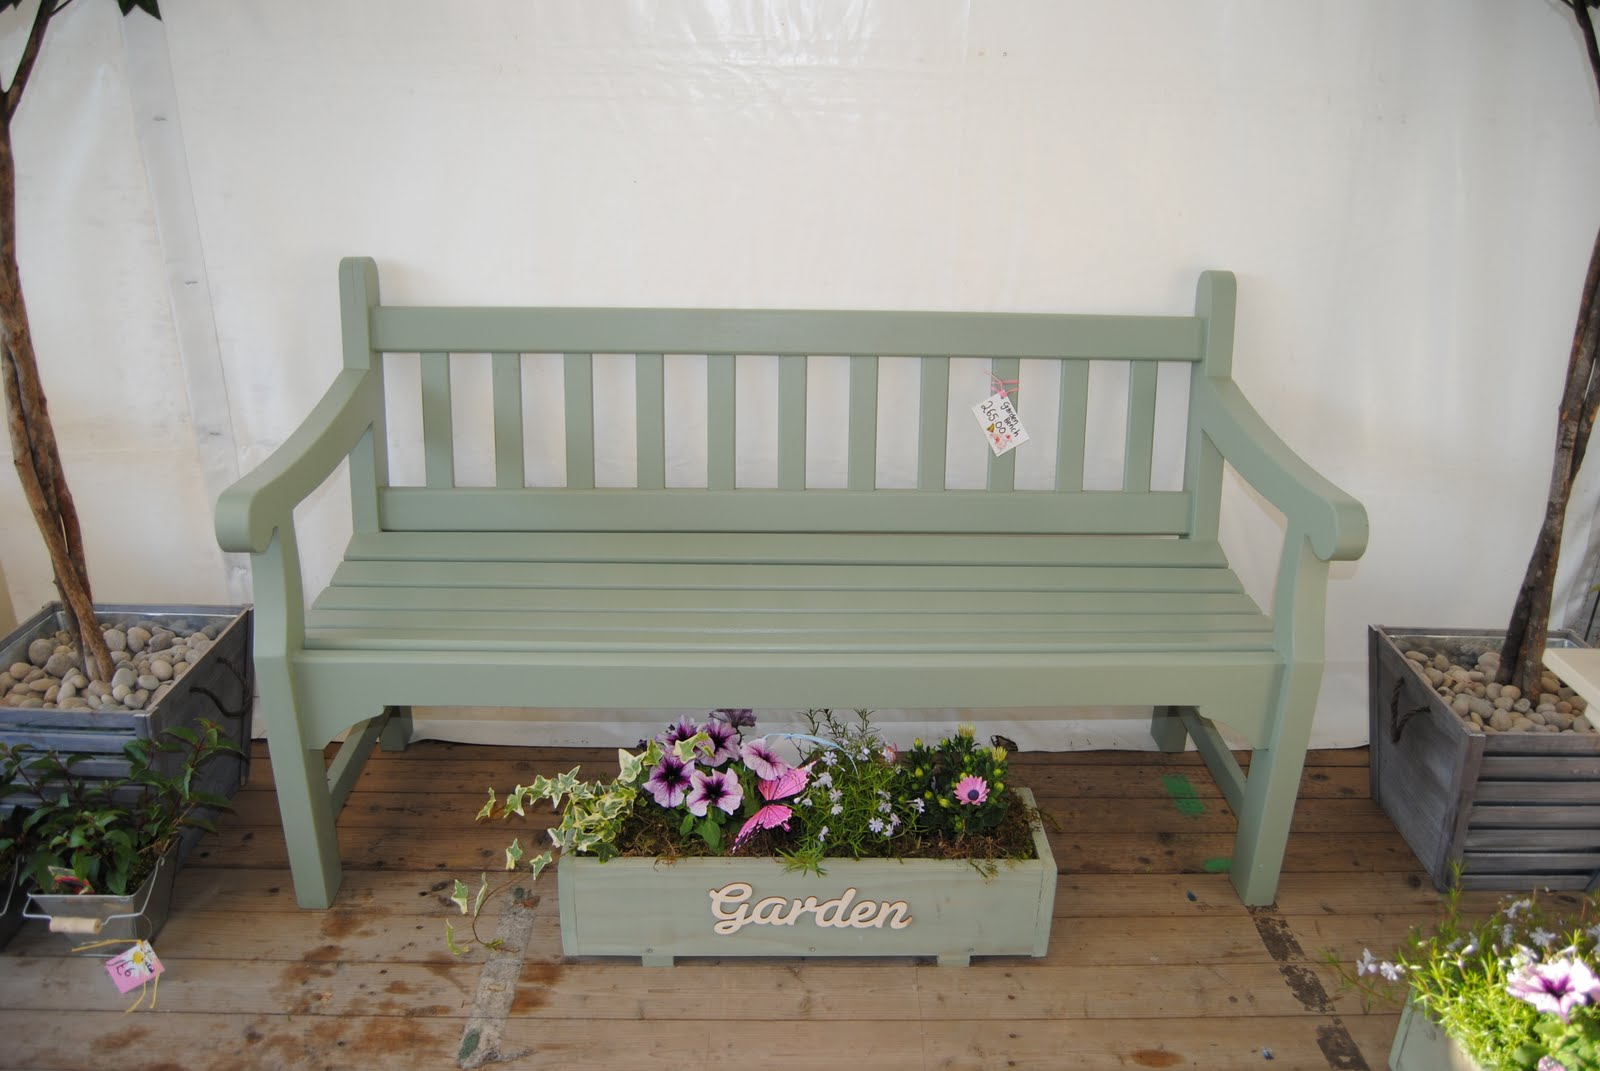 Ideas for painting your garden shed - Bench Painted With Cuprinol Garden Shades In Willow For The Cottage Pinterest Garden Shade Gardens And Garden Ideas